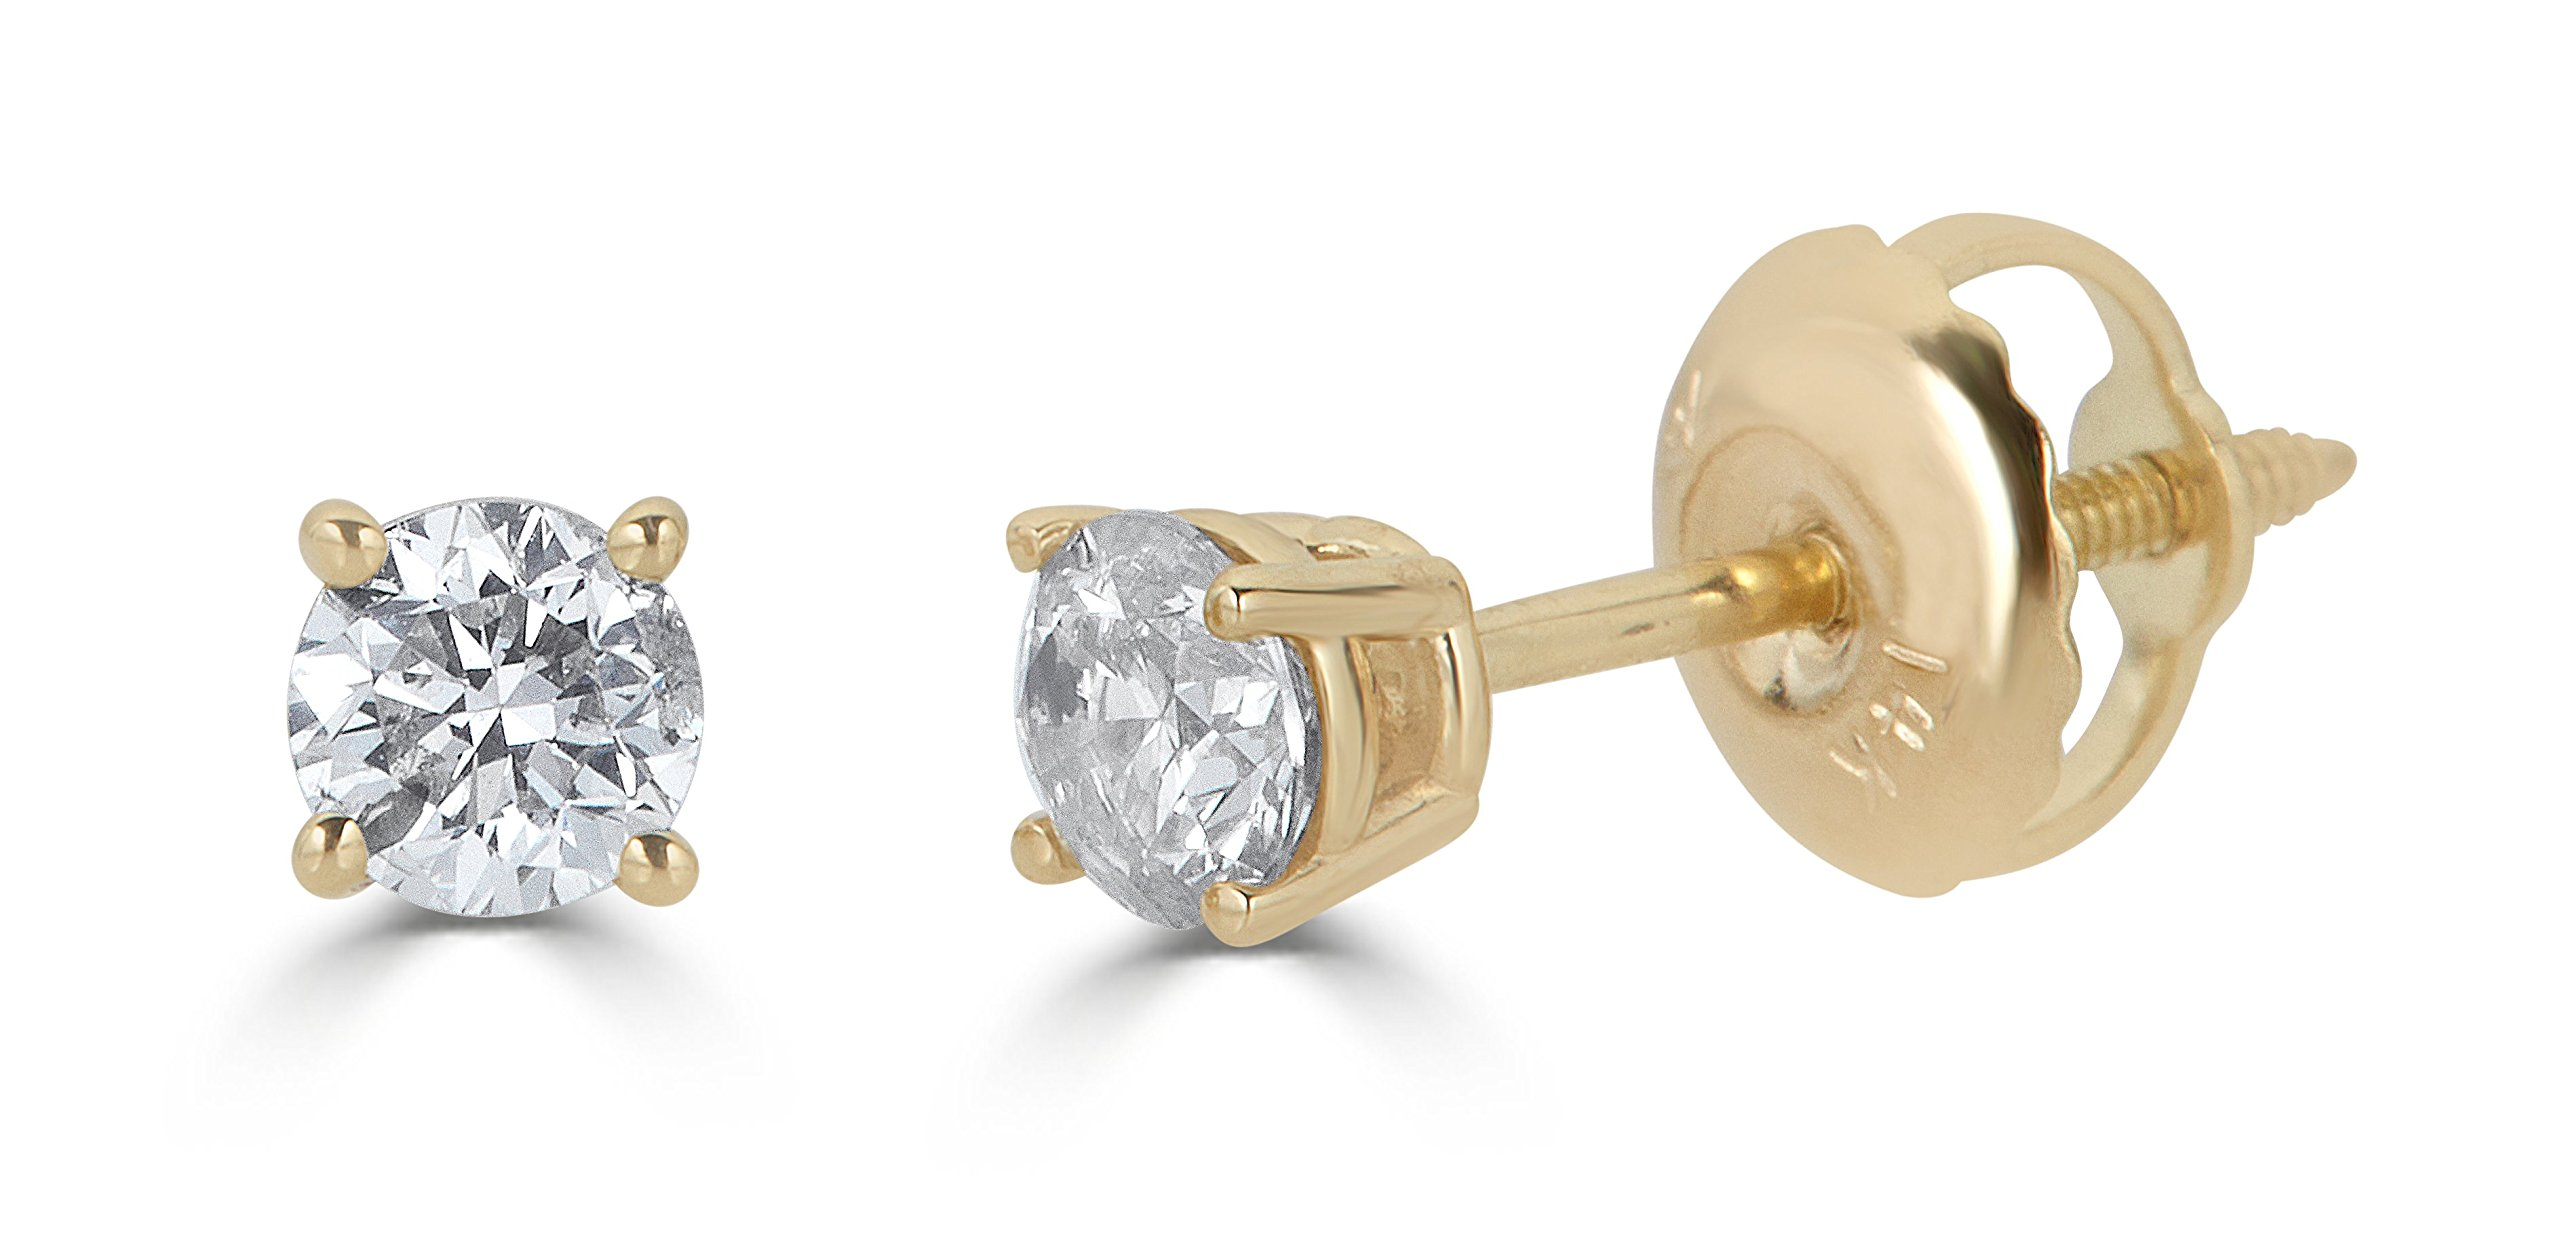 AGS Certified 14k Yellow Gold Round-Cut Diamond Stud Earrings (2cttw, K-L Color, I1-I2 Clarity) by Amazon Collection